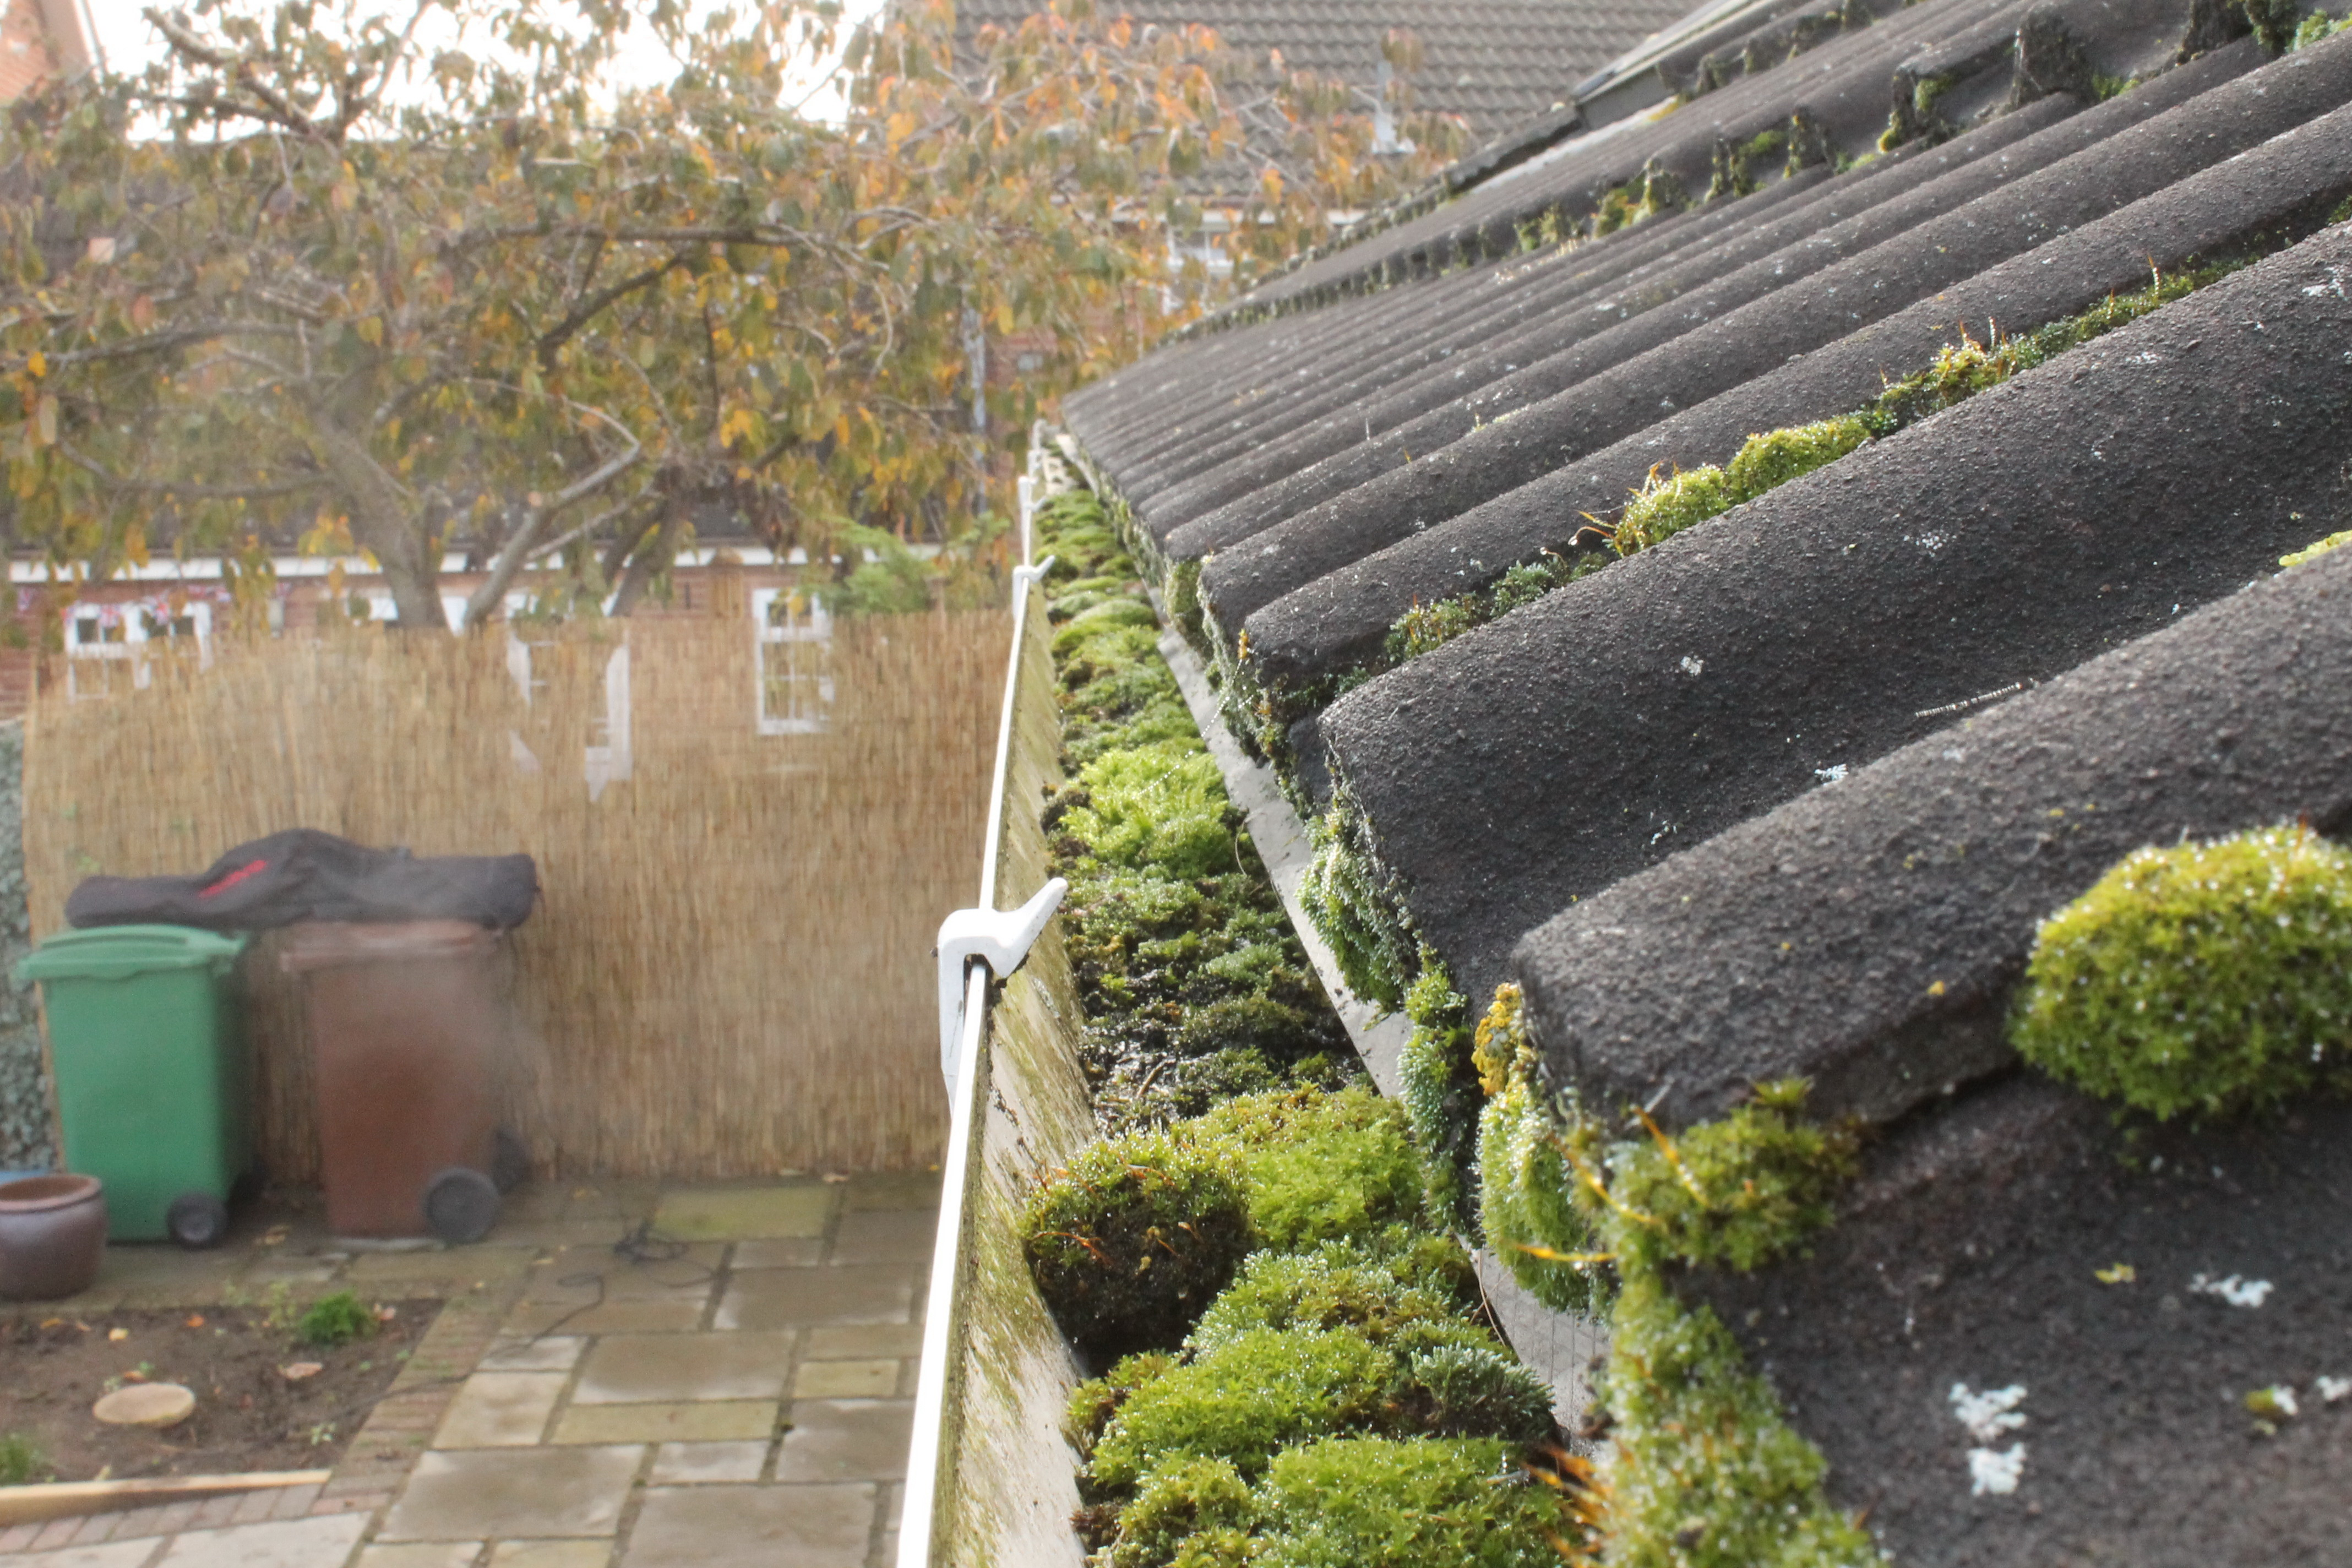 Gutter And Drive Cleaning Stockport